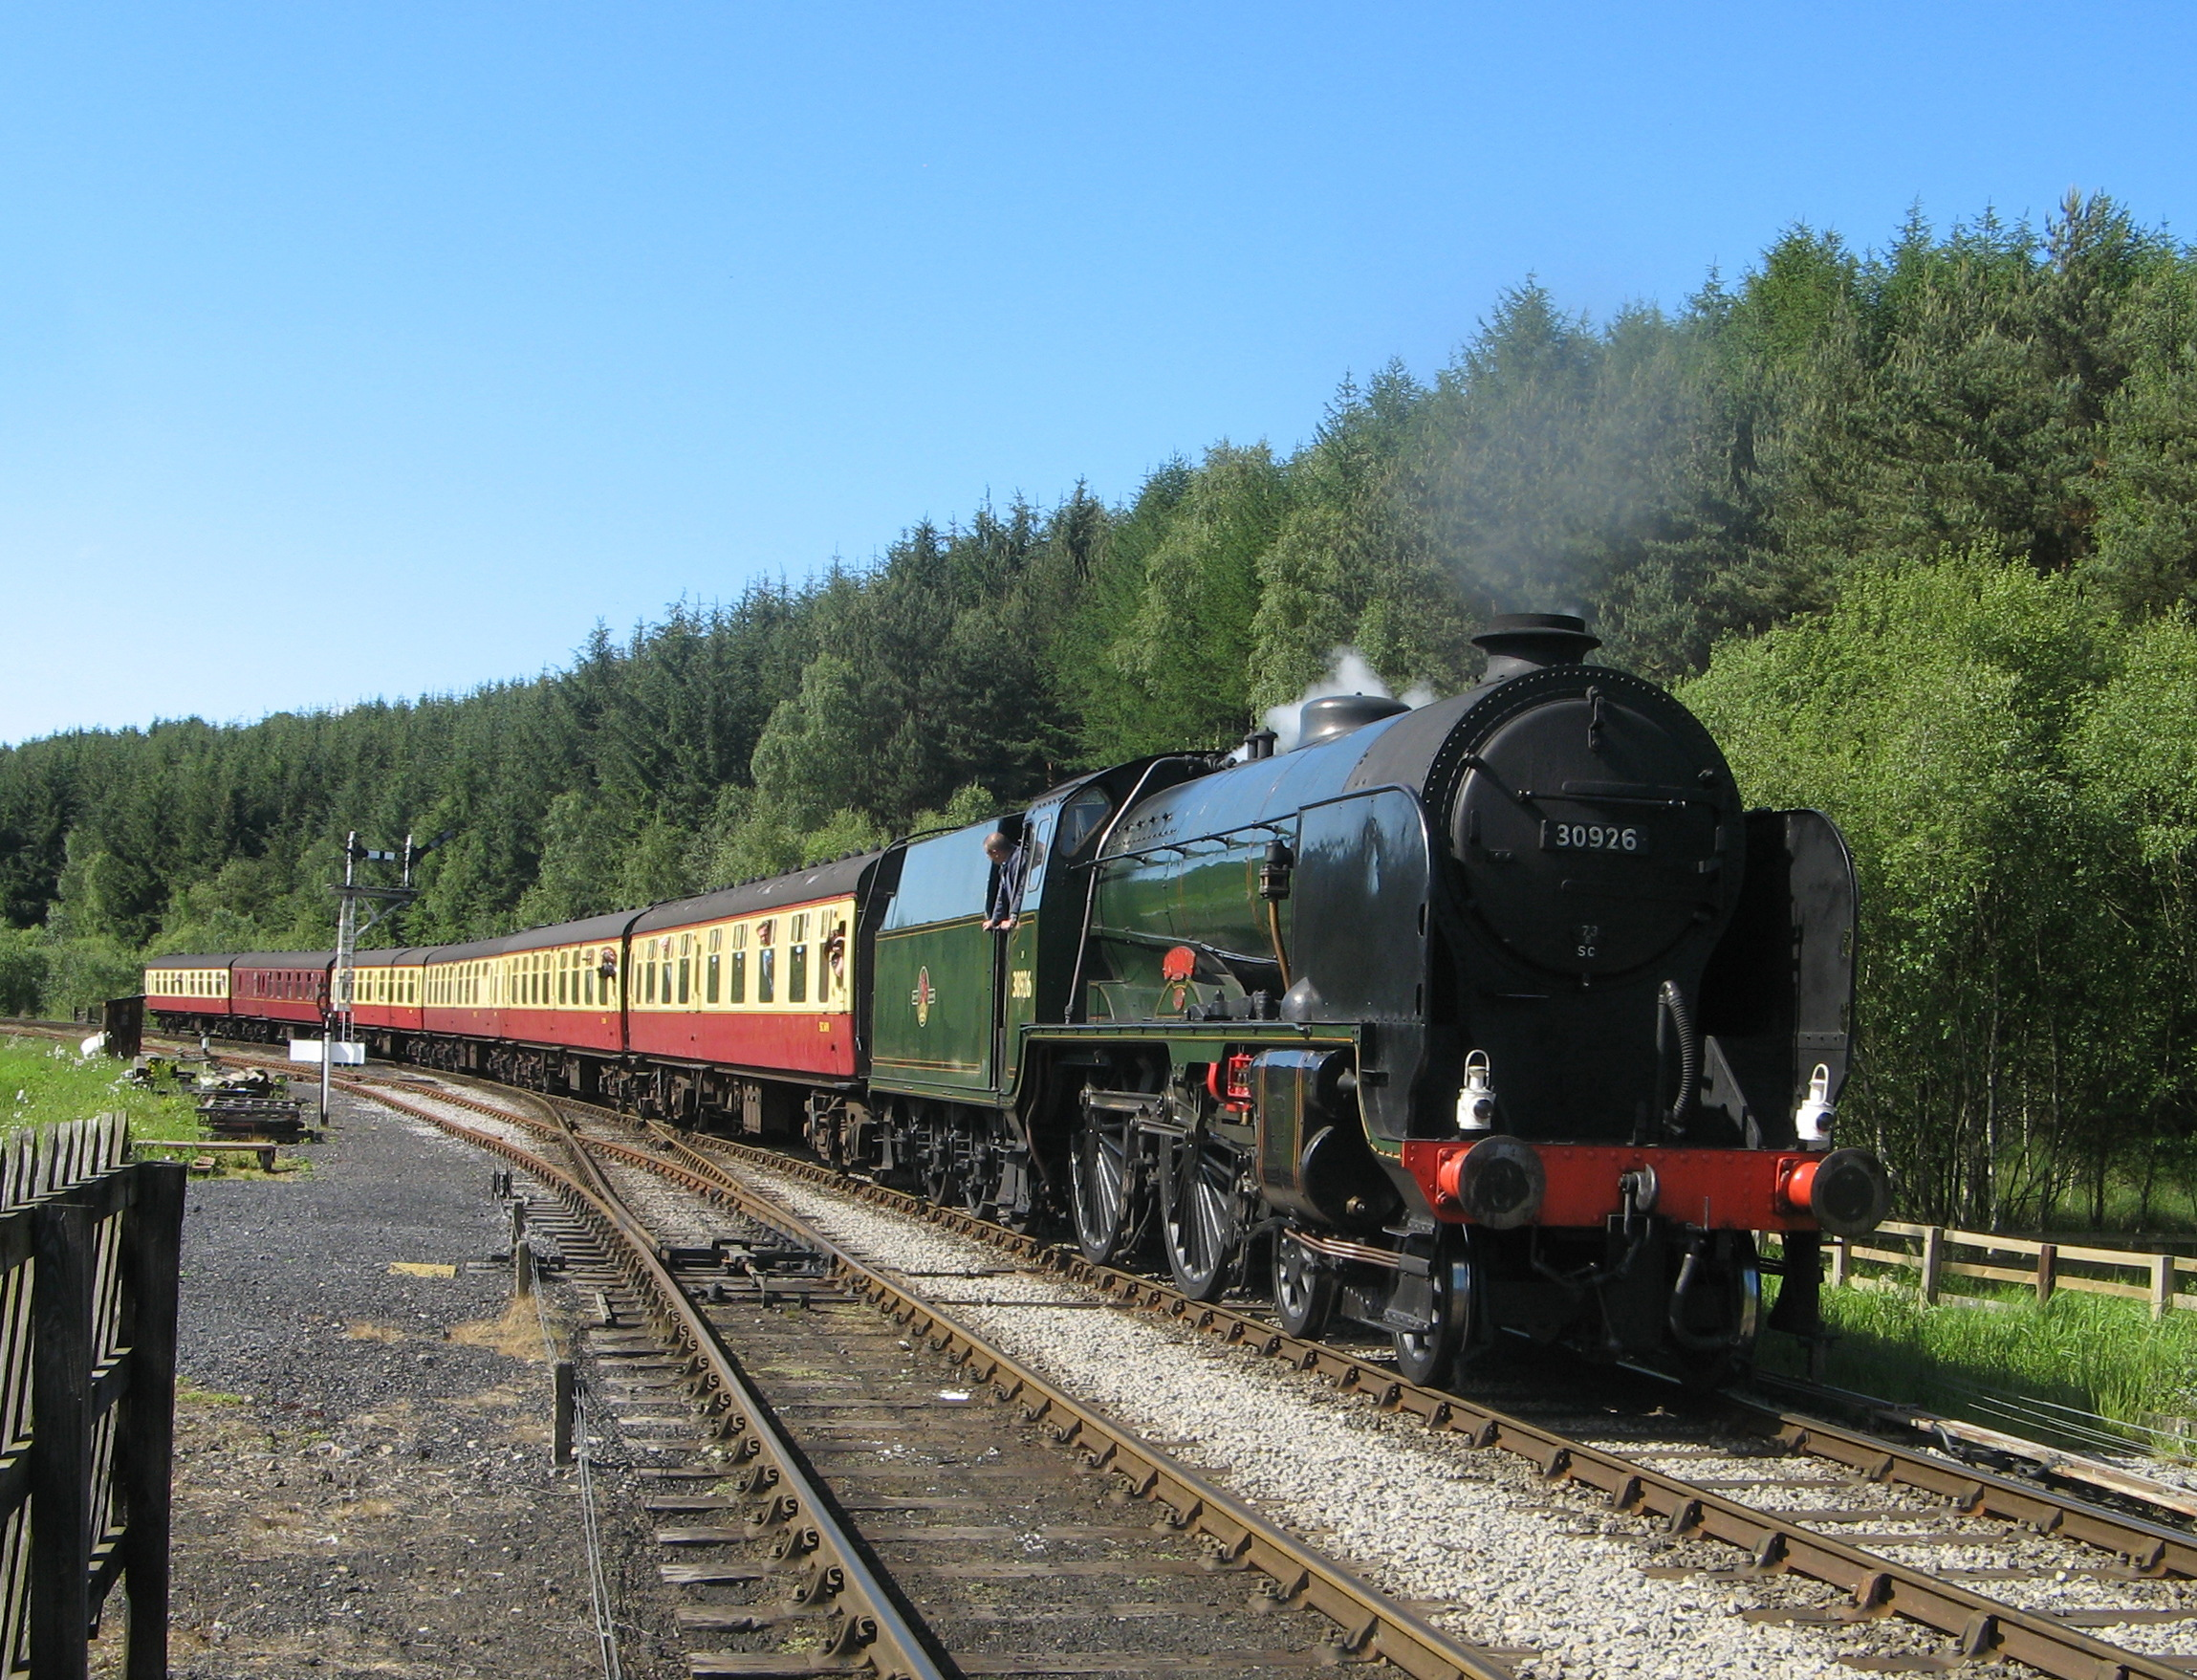 'Schools' No. 30926  Repton  will be making a welcome return visit to the Severn Valley Railway at the line's 'Autumn Steam Gala' on September 21-21. It is pictured here steaming into Levisham at its North Yorkshire Moors Railway home. PHILIP BENHAM